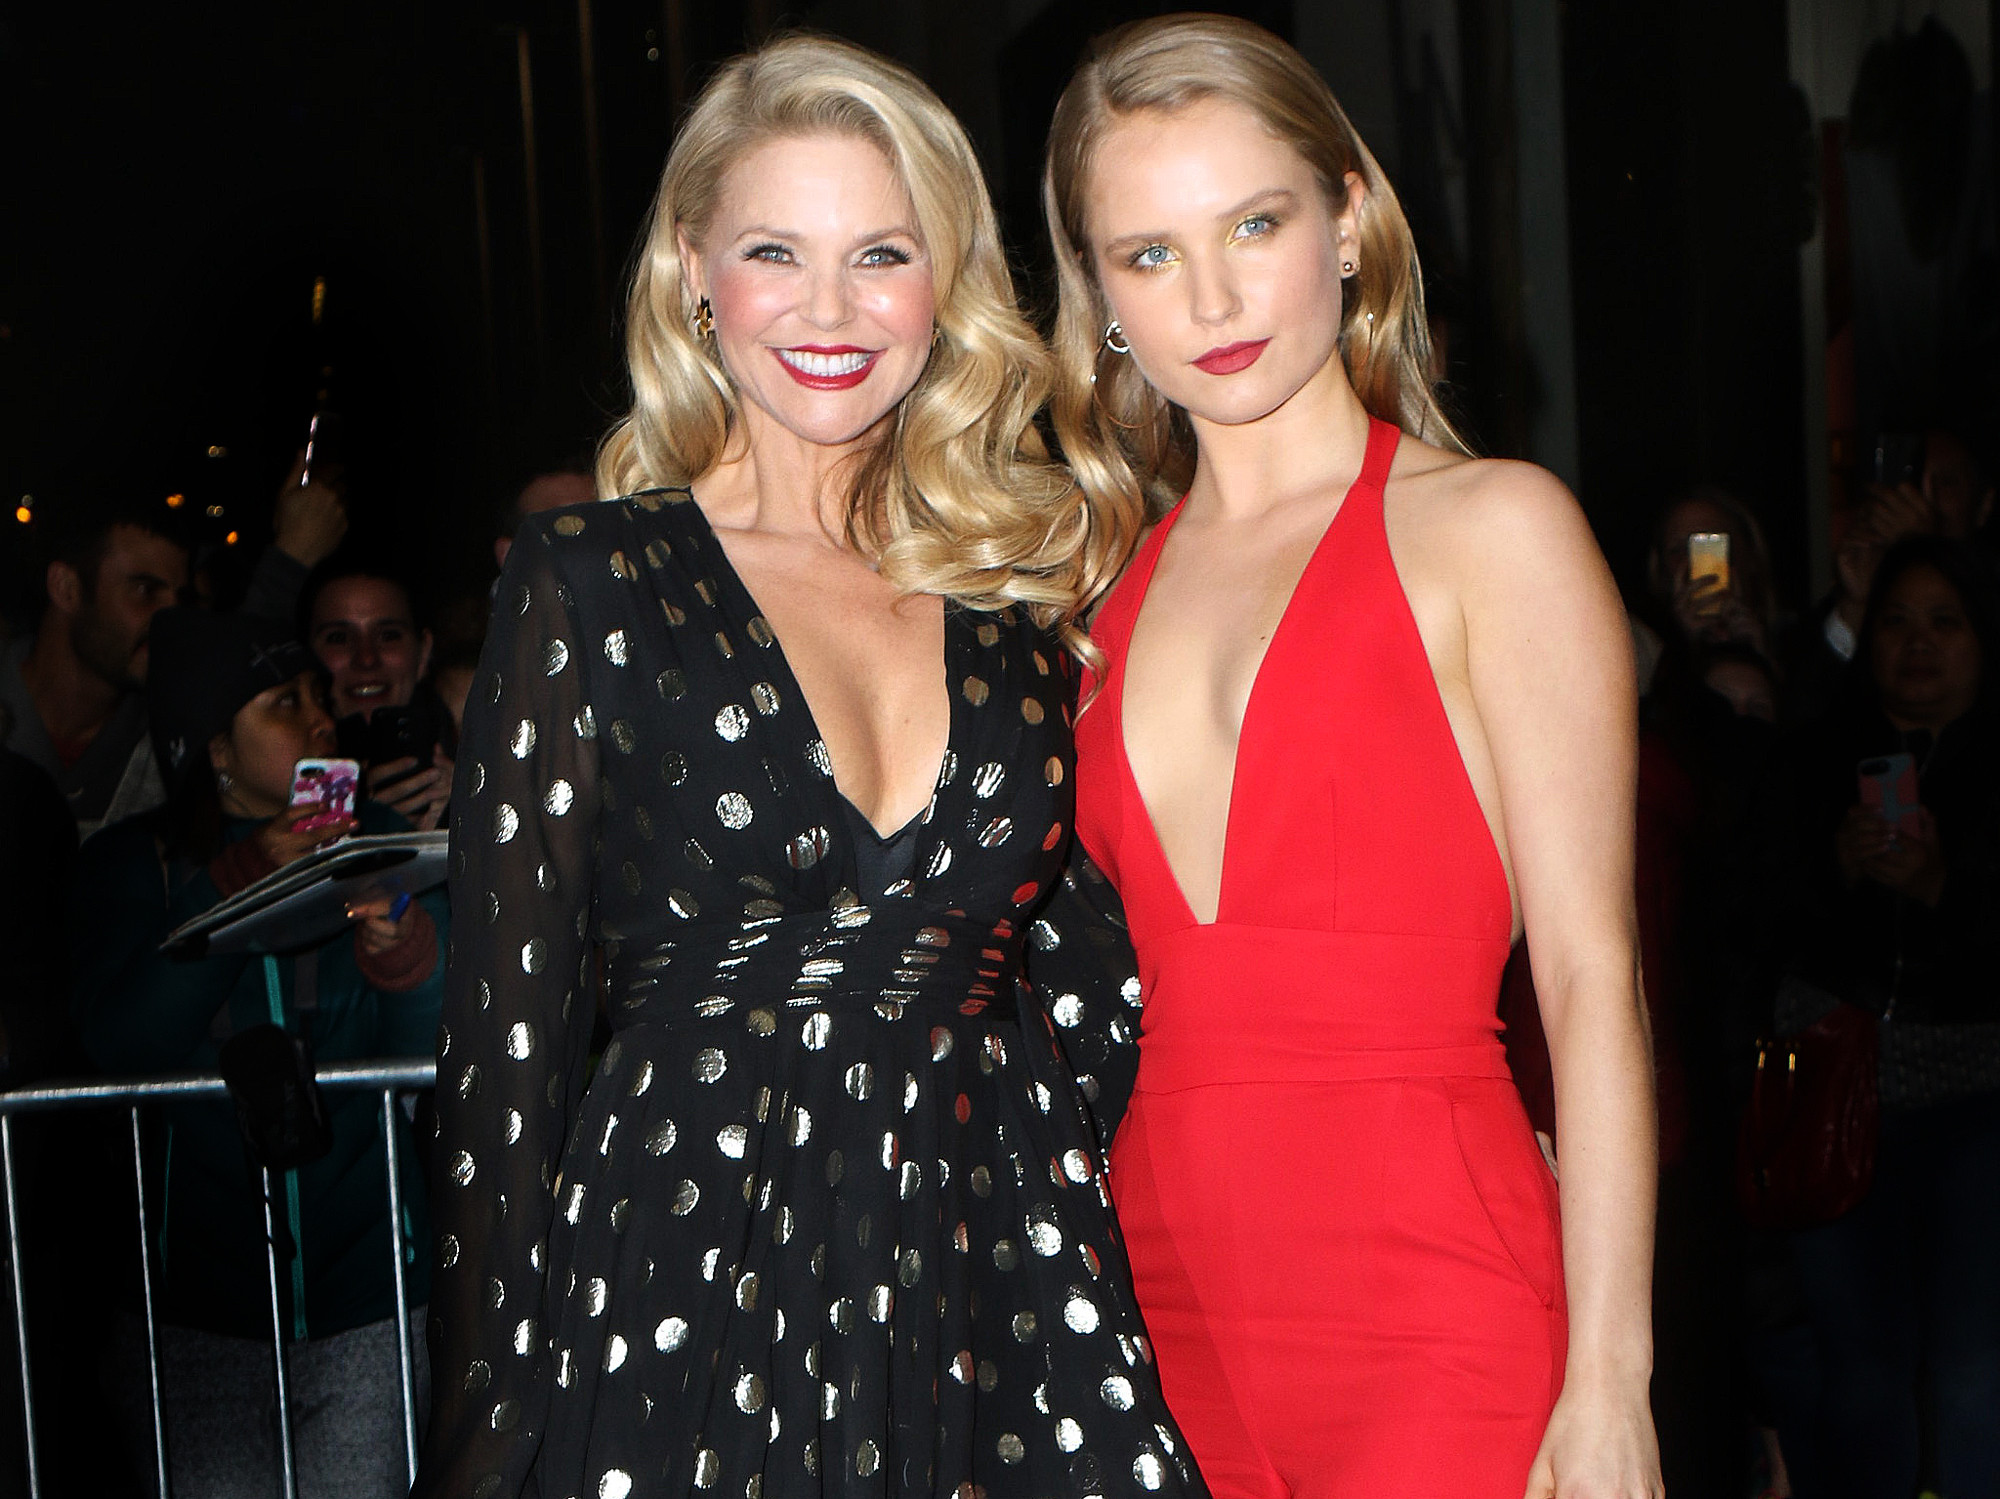 Watch Christie Brinkley Tell Her Daughter She's Officially an <em>SI</em> Swimsuit Model